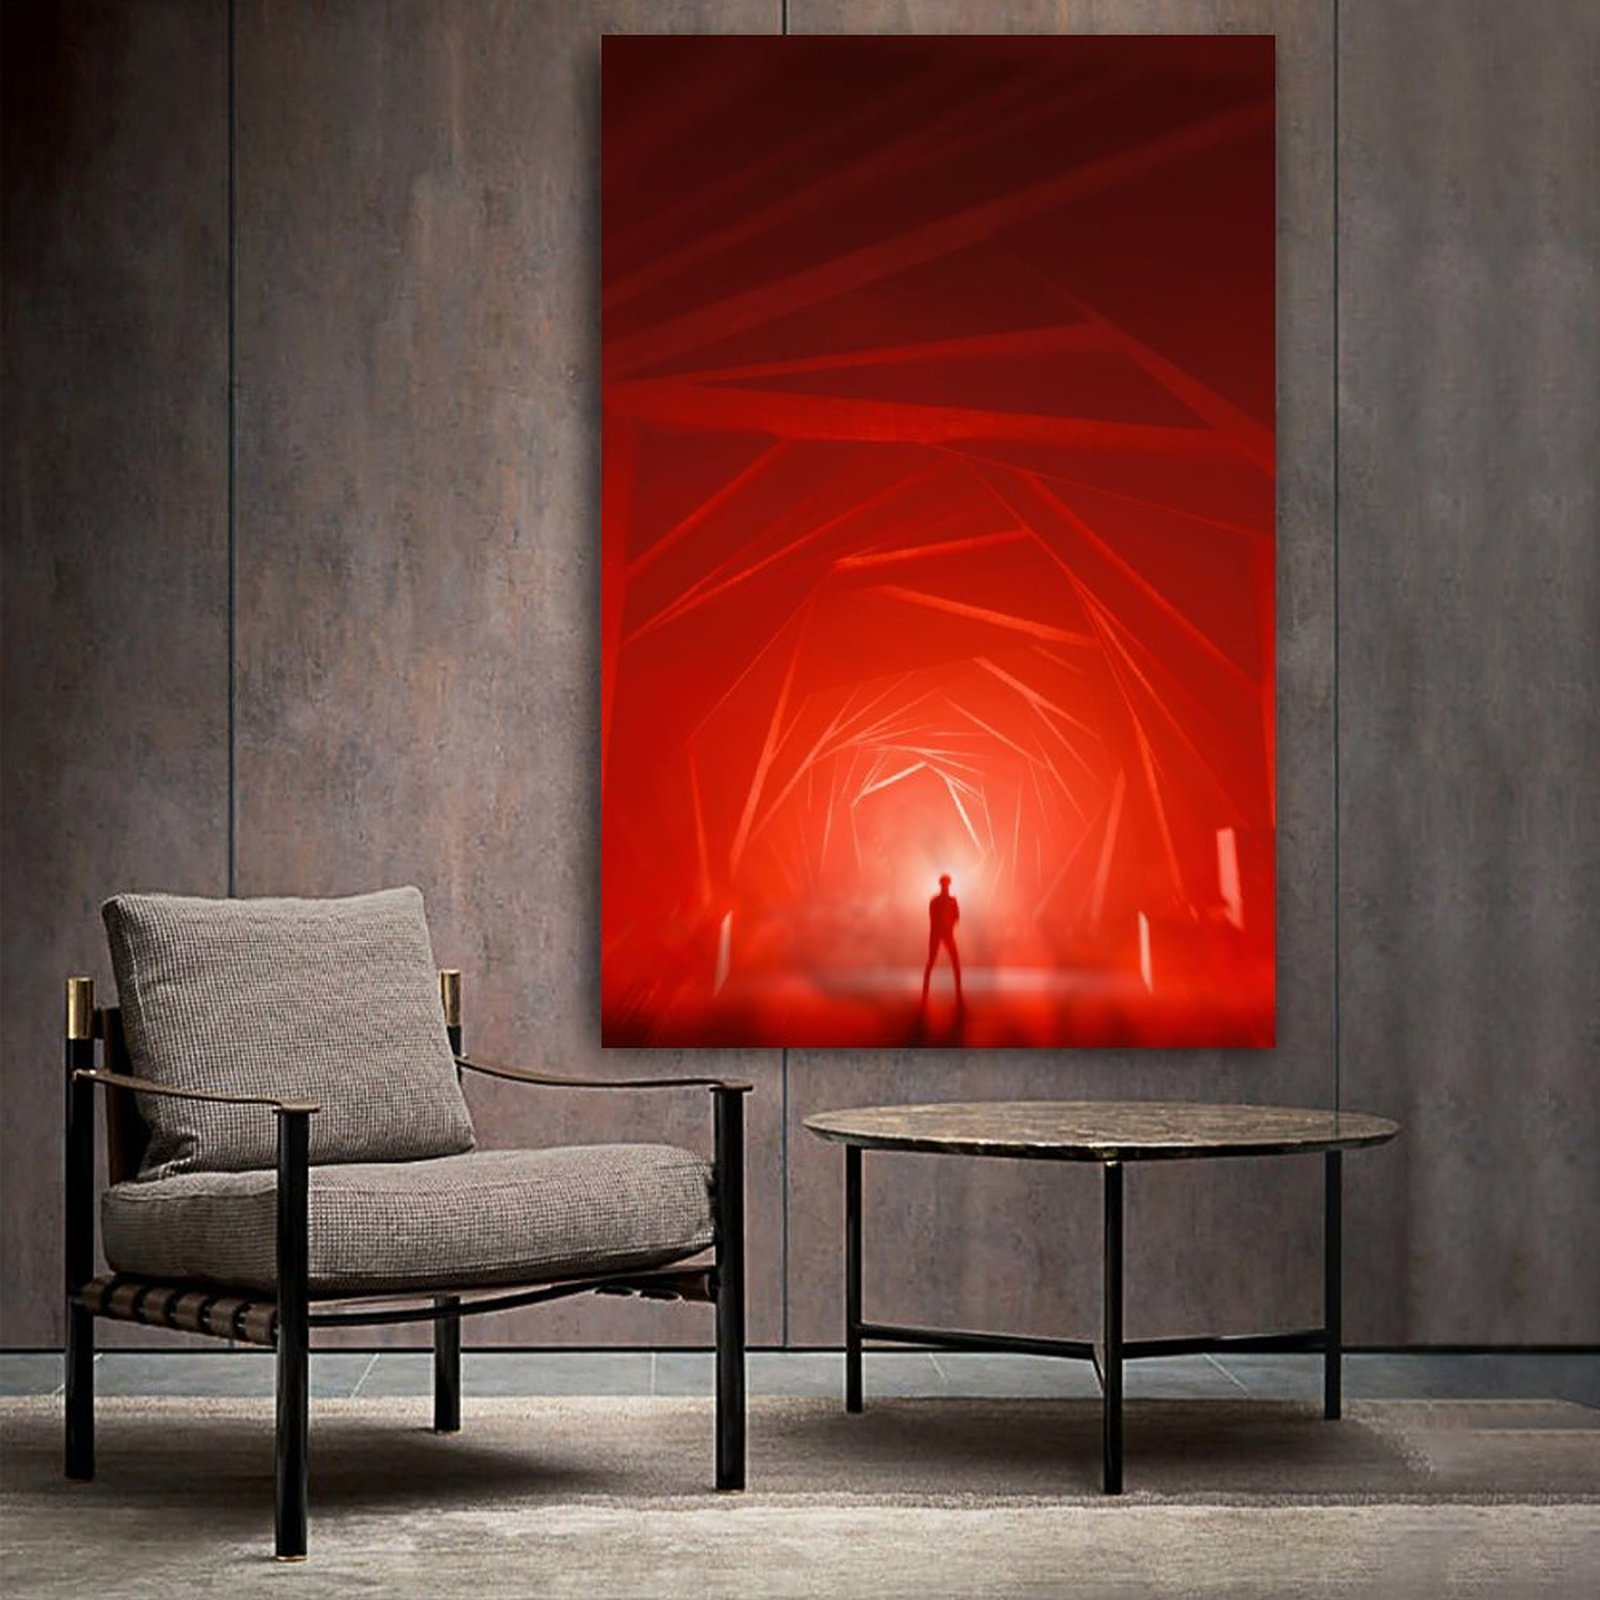 red light poster decorative painting canvas wall art living room posters bedroom painting